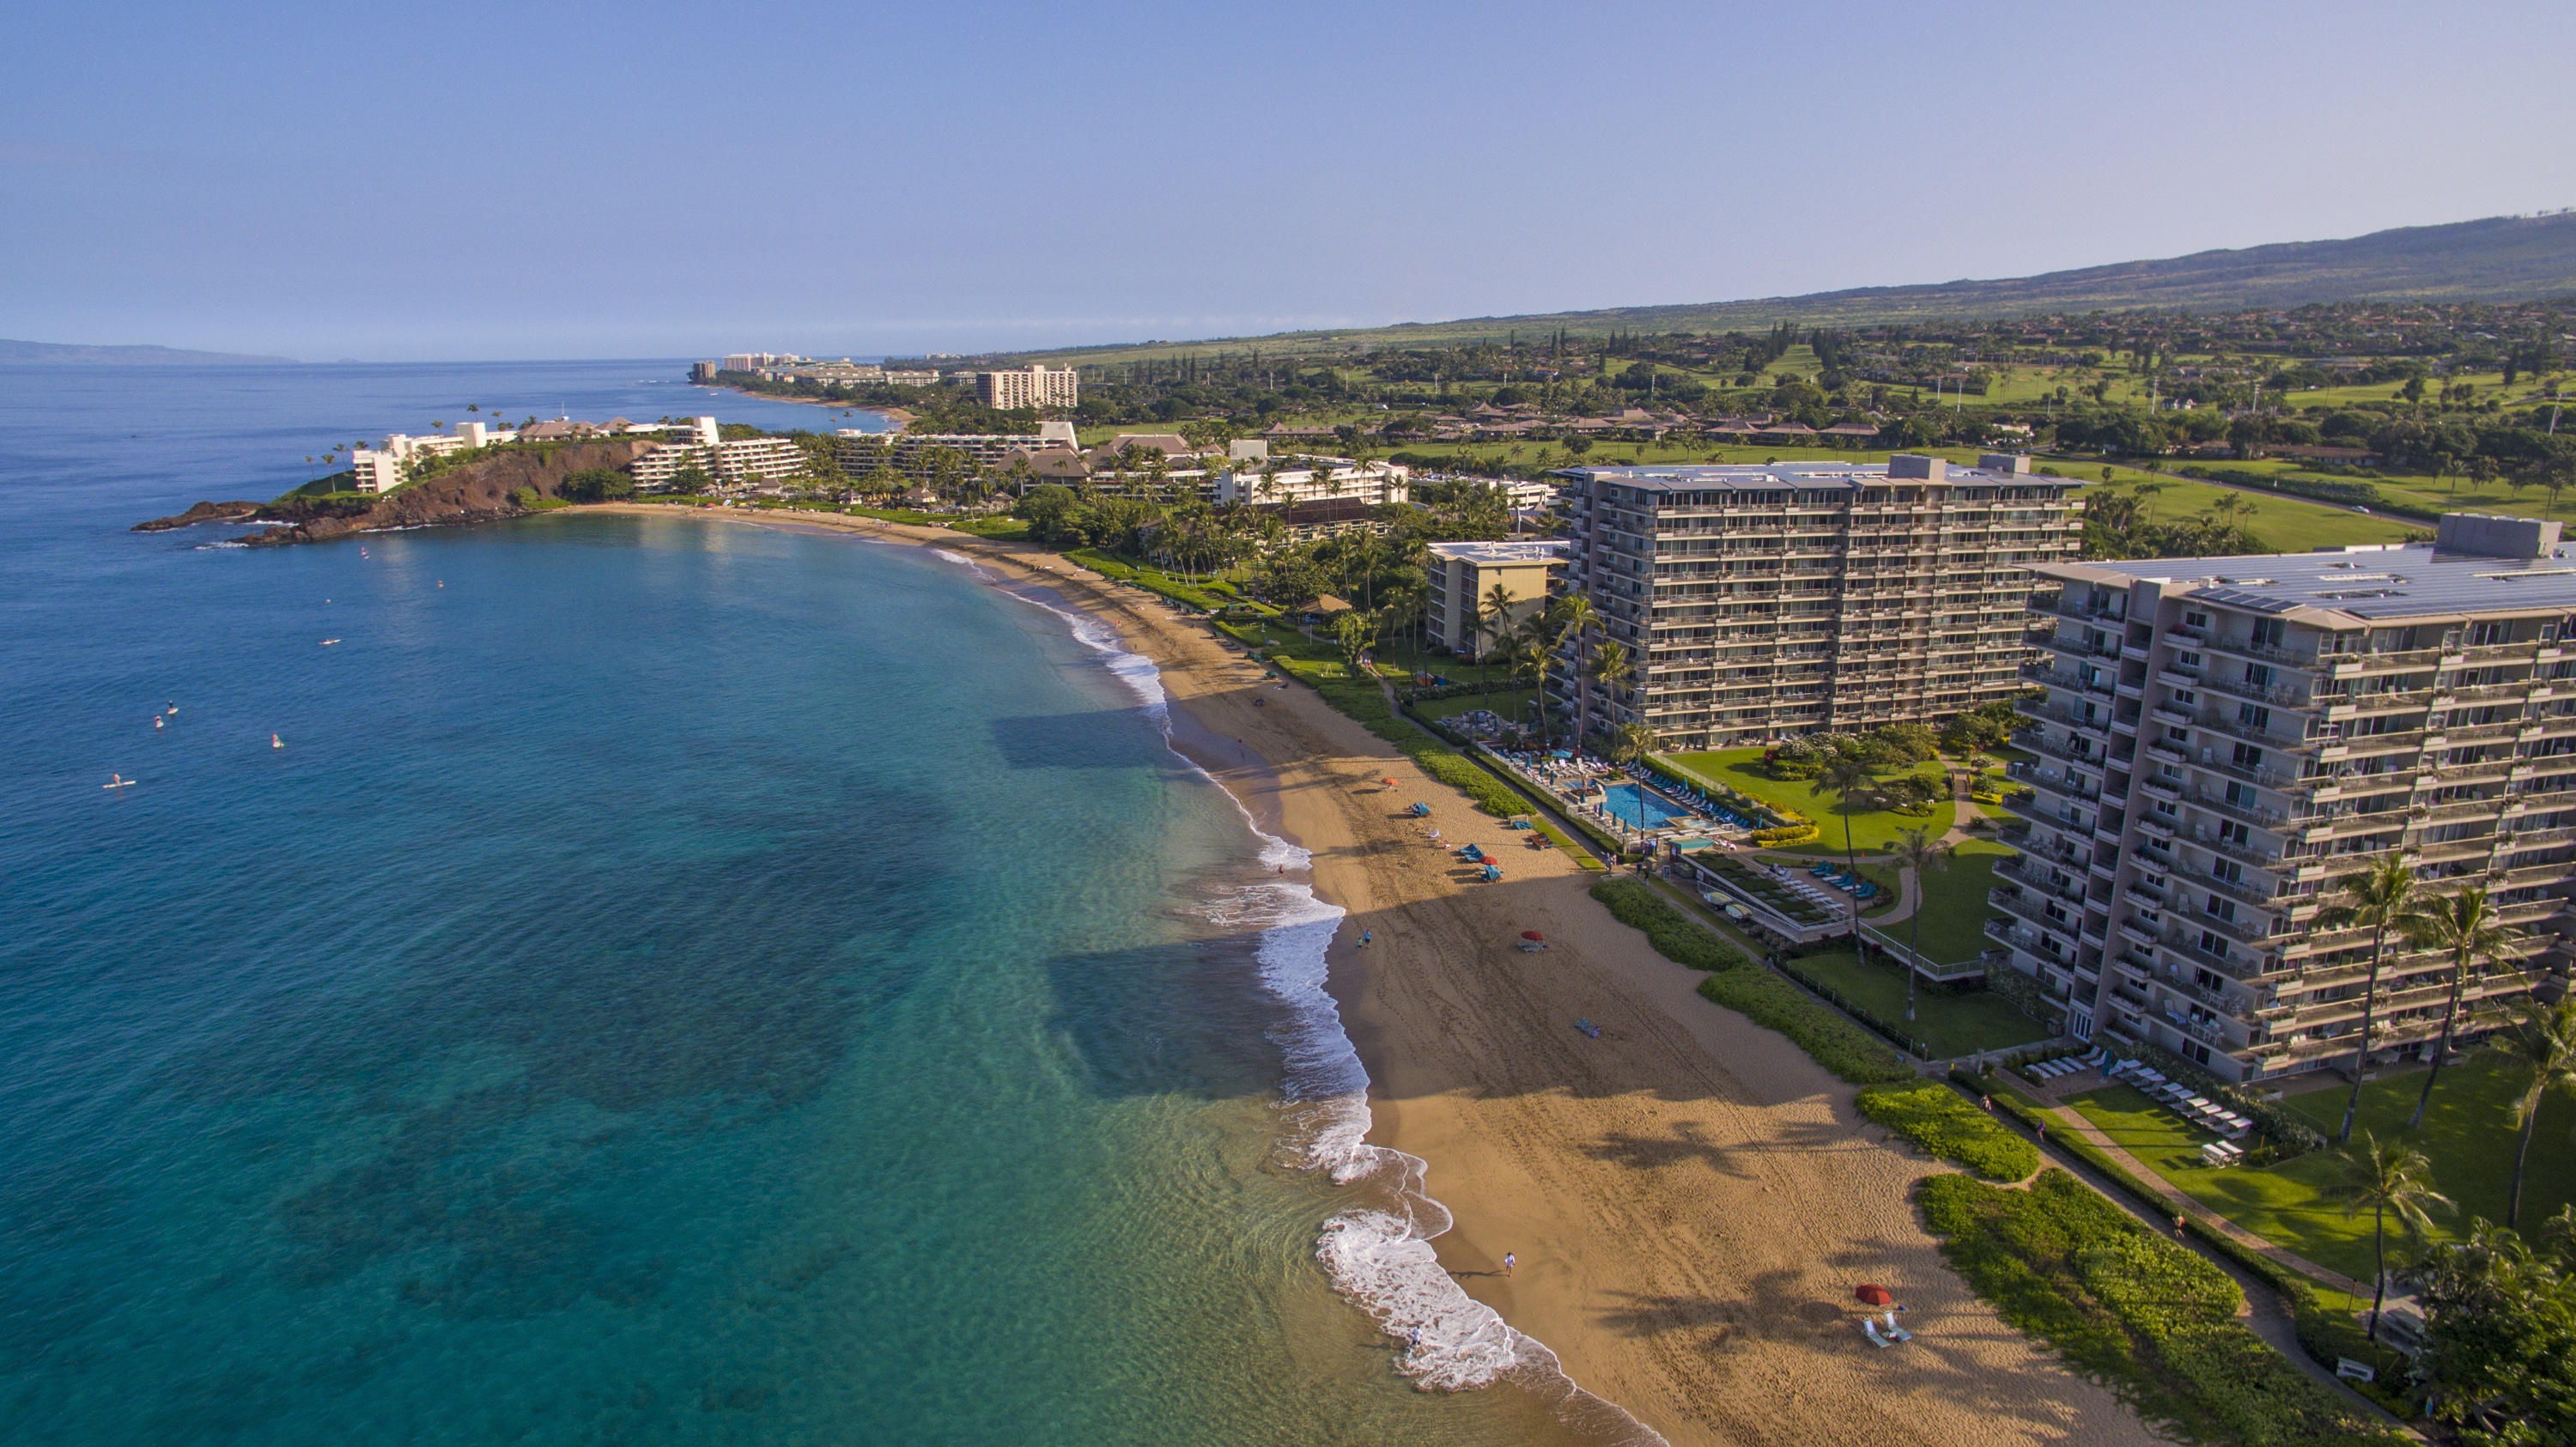 """Kaanapali Says """"Aloha-aaaaah"""" to Two New Spas - Maui has two new ways to destress, relax, and unwind – Puamana Day Spa, located within Aston Kaanapali Shores and The Spa at Aston at the Whaler on Kaanapali Beach. (Photo: Business Wire)"""